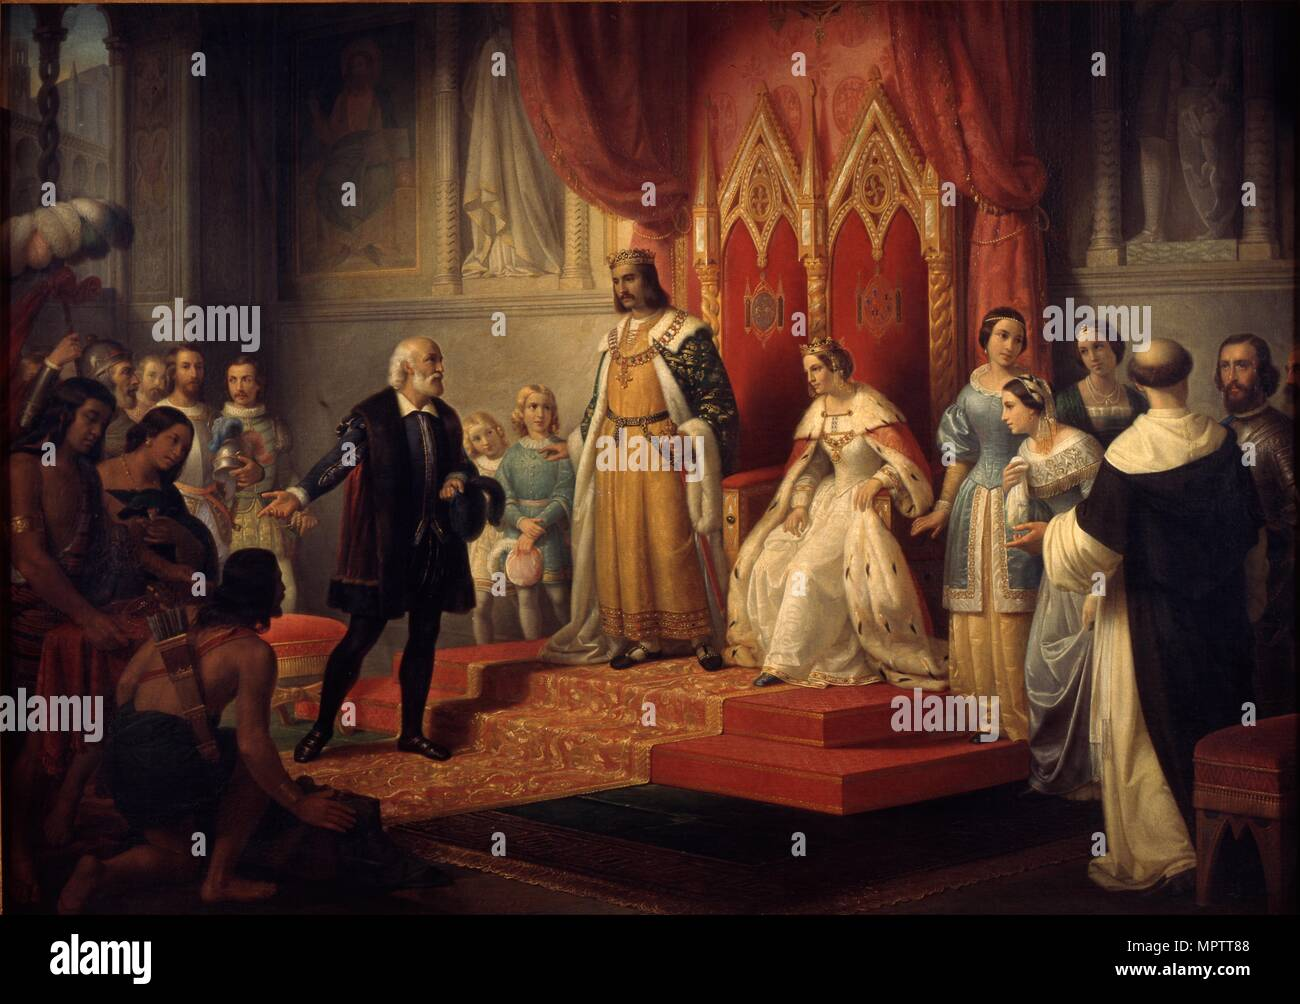 Christopher Columbus at the Court of the Catholic Monarchs. - Stock Image